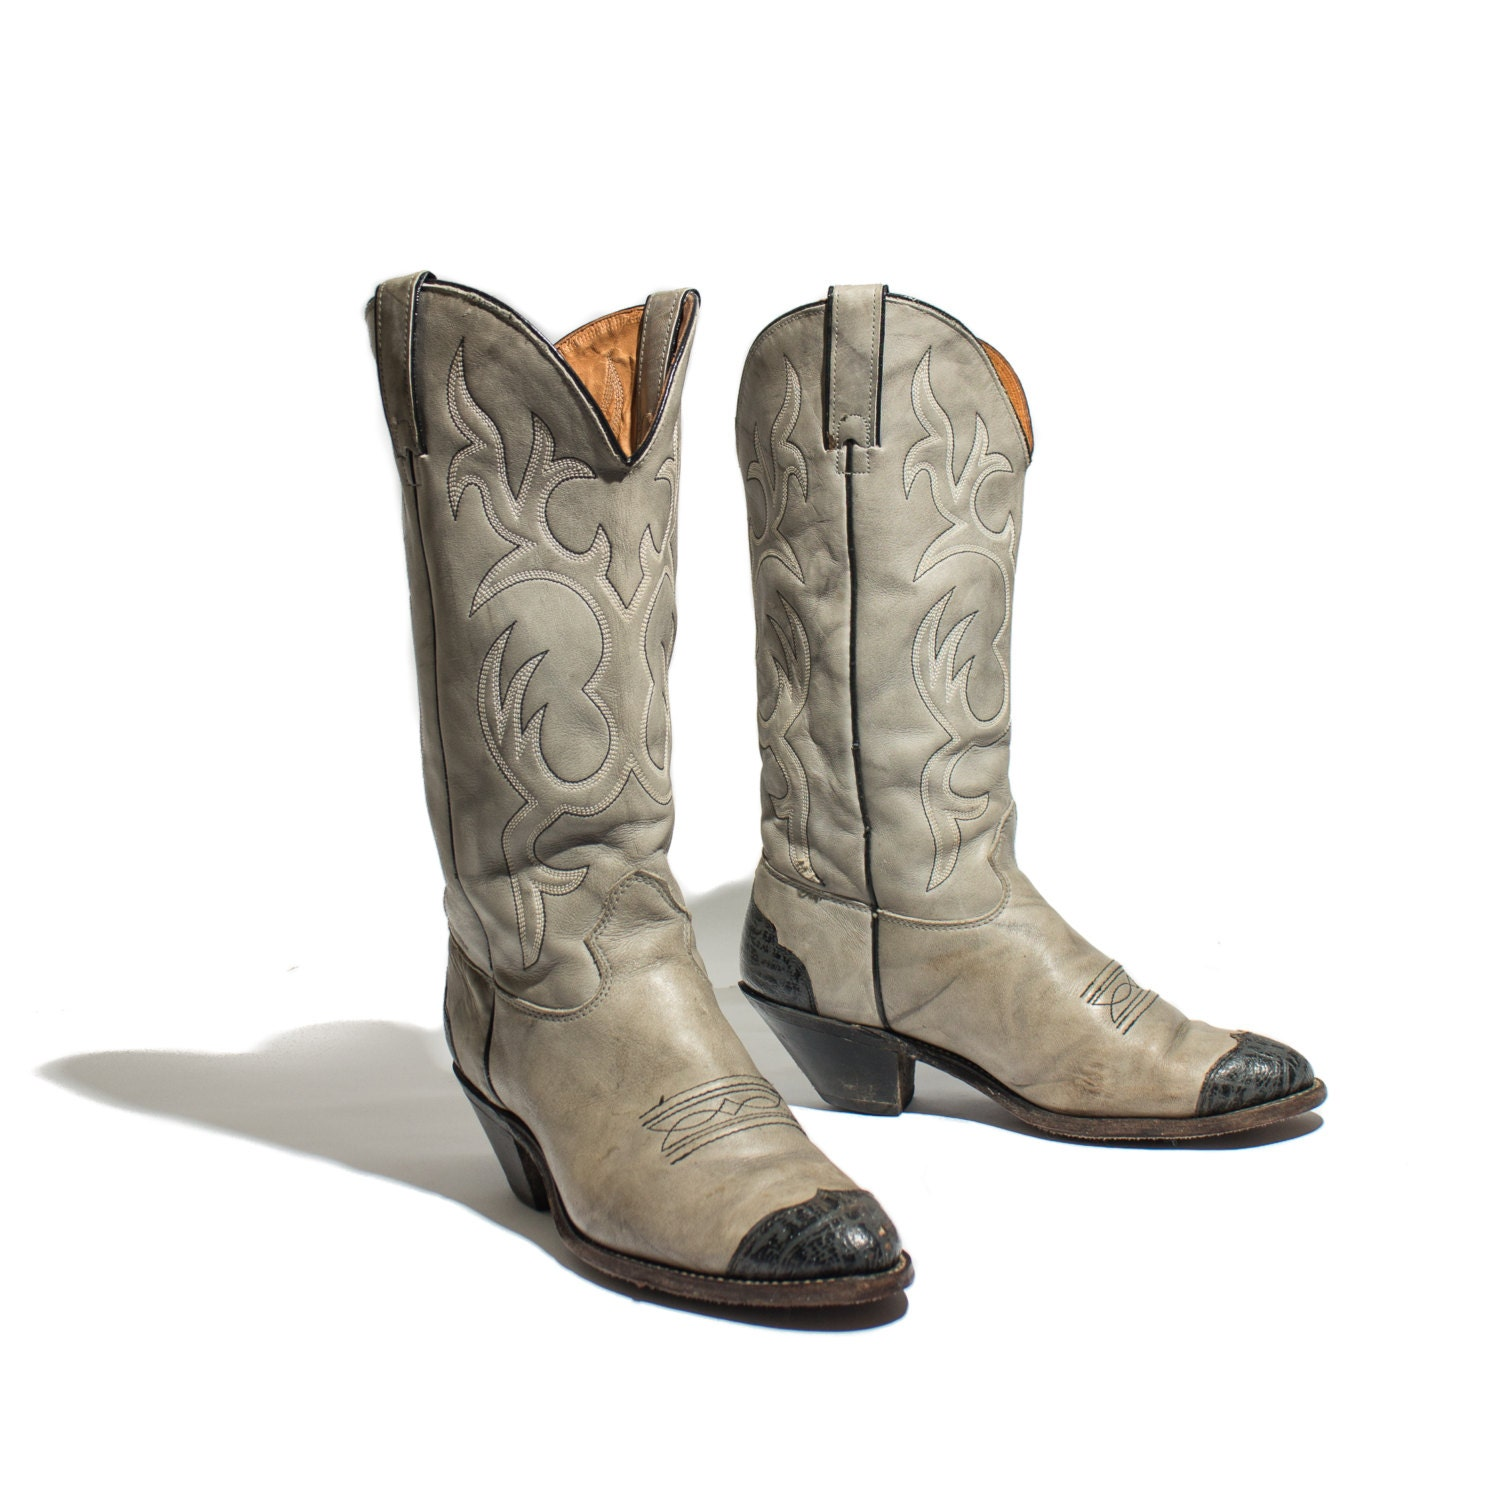 size 9 m s cowboy boots gray leather western by shopndg